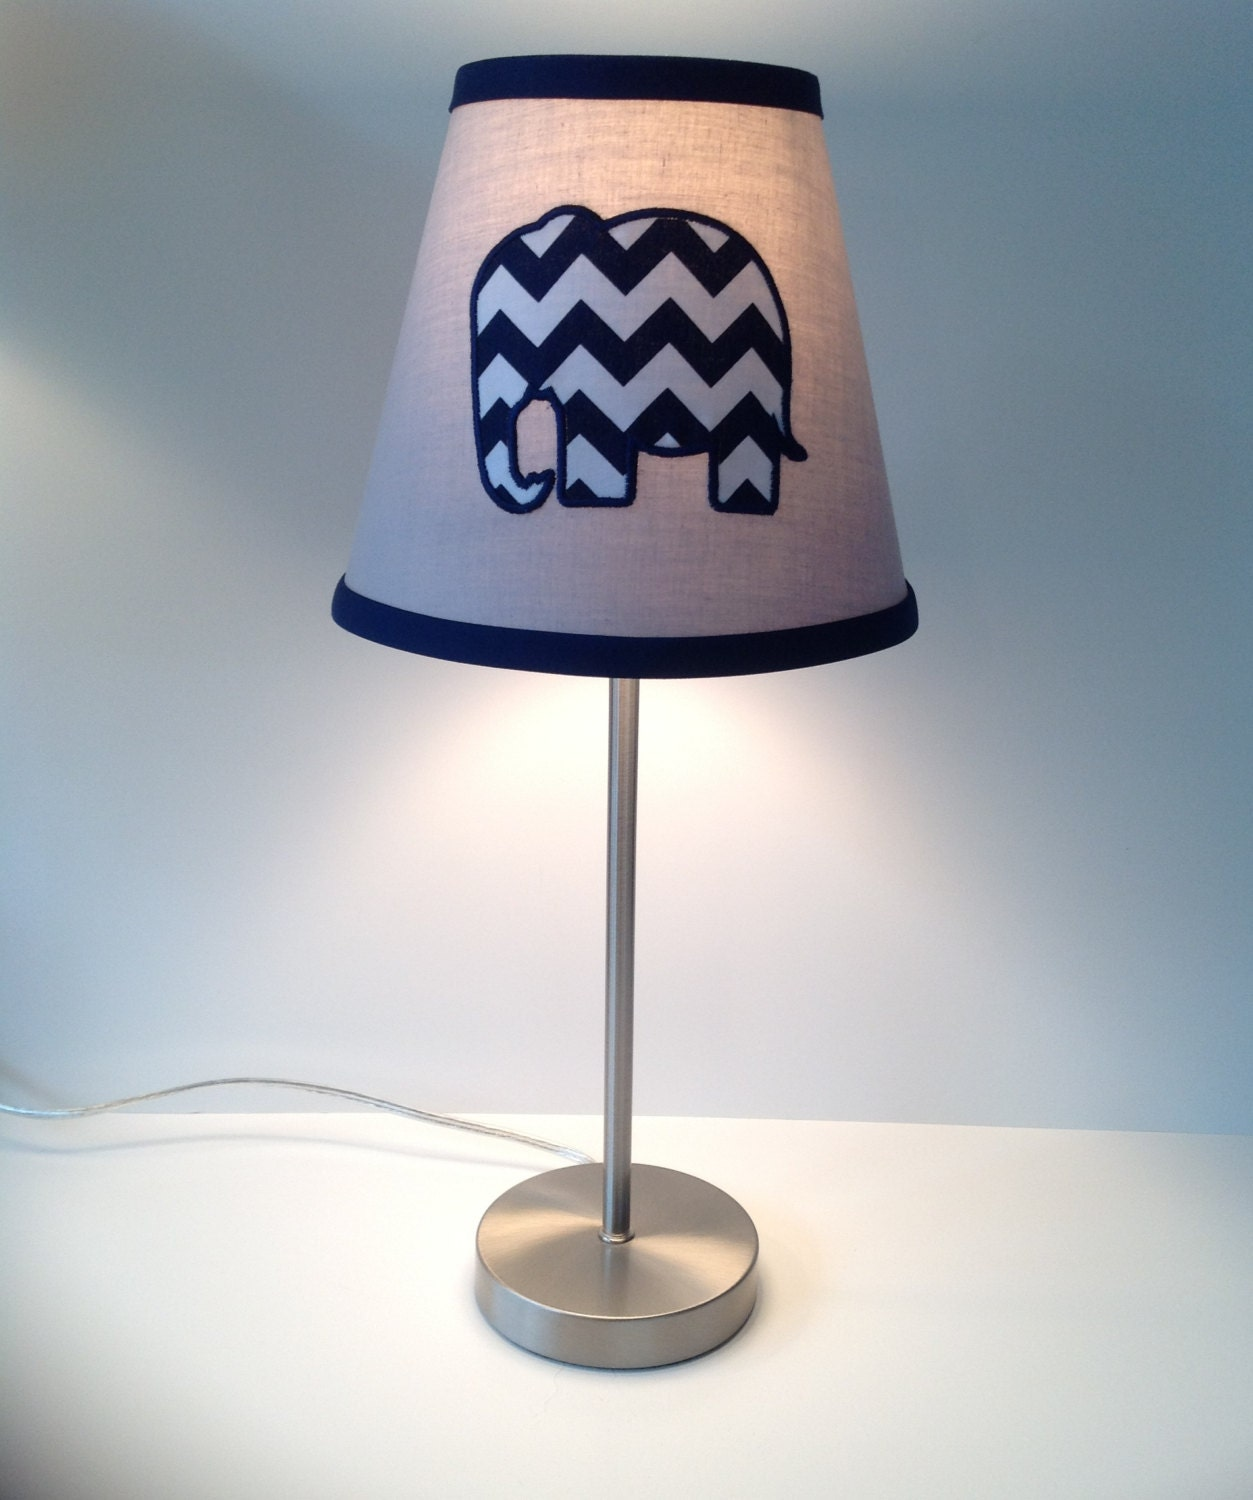 applique elephant nursery lamp shade gray navy blue chevron. Black Bedroom Furniture Sets. Home Design Ideas